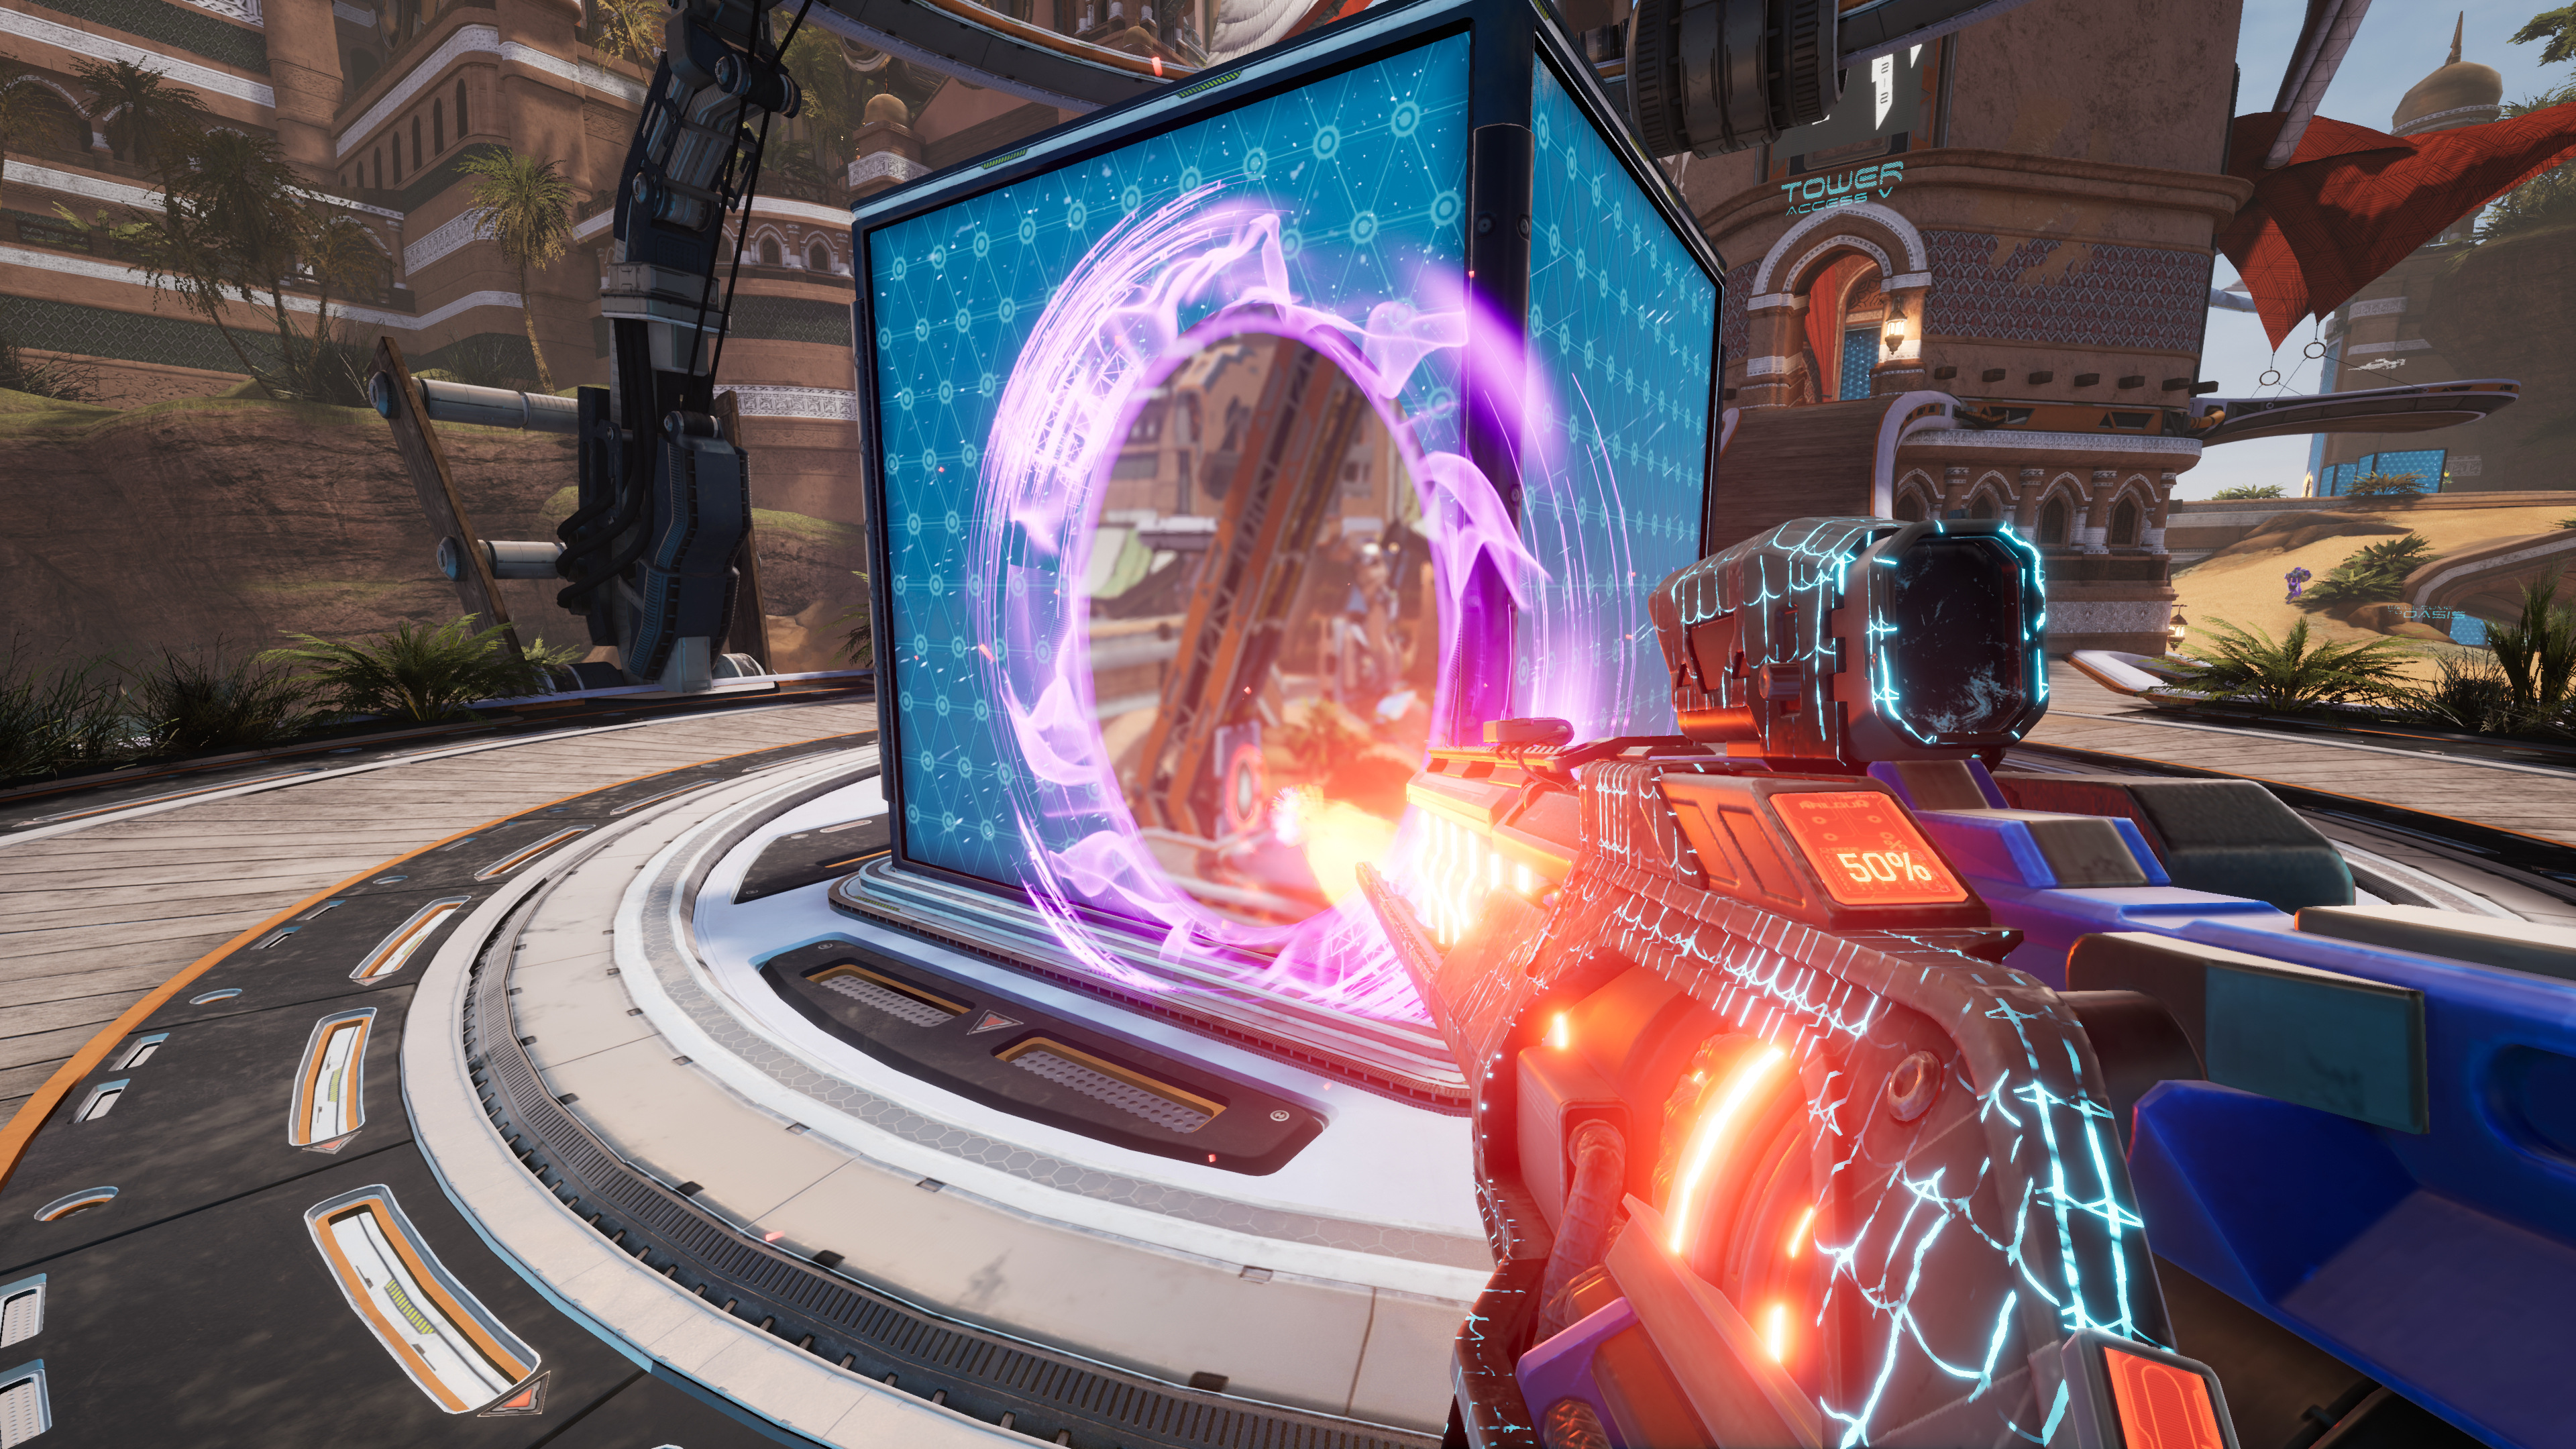 Splitgate, one of the most popular games on Steam, is only 25% finished